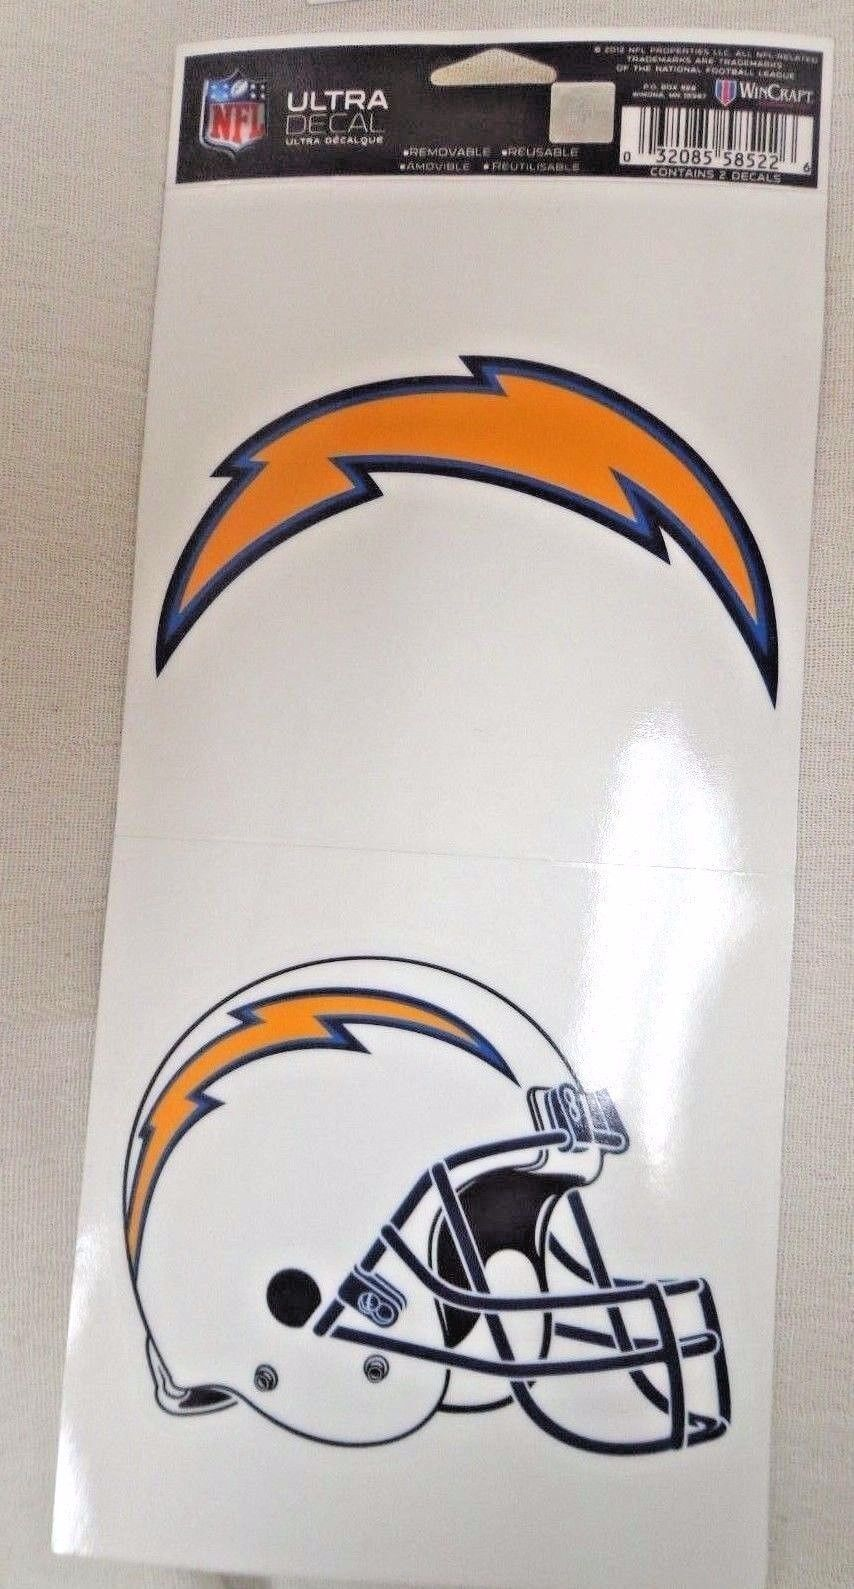 NFL Ultra Decals 2 Pack Set Removable Reusable Sticker Wincraft Los Angeles Chargers